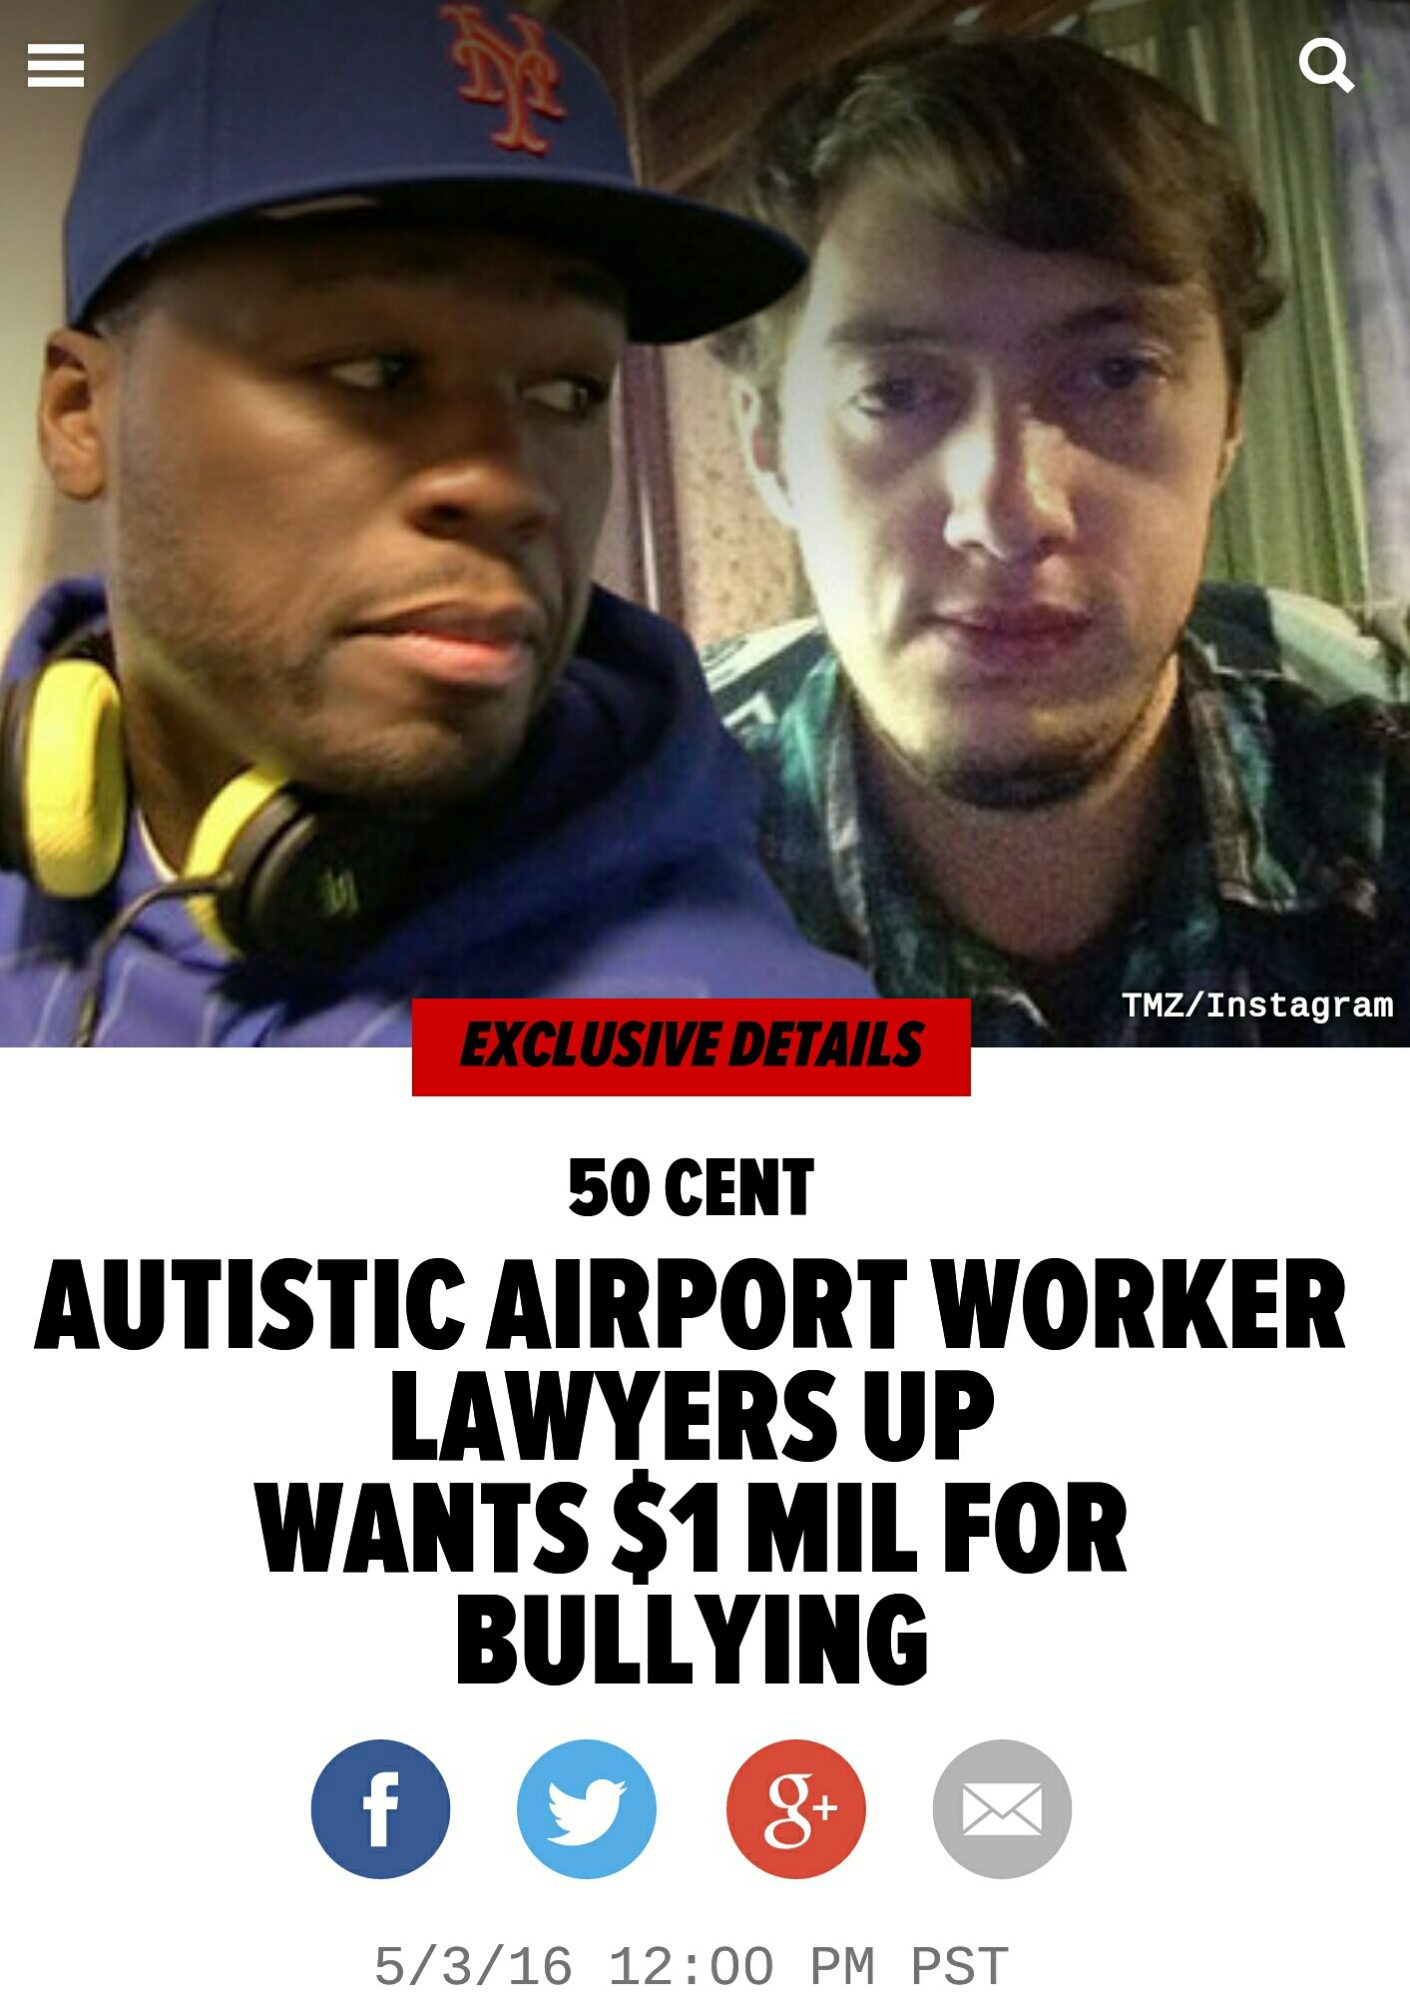 Is 50 Cent guilty of bullying a 19 year old kid with #Autism?